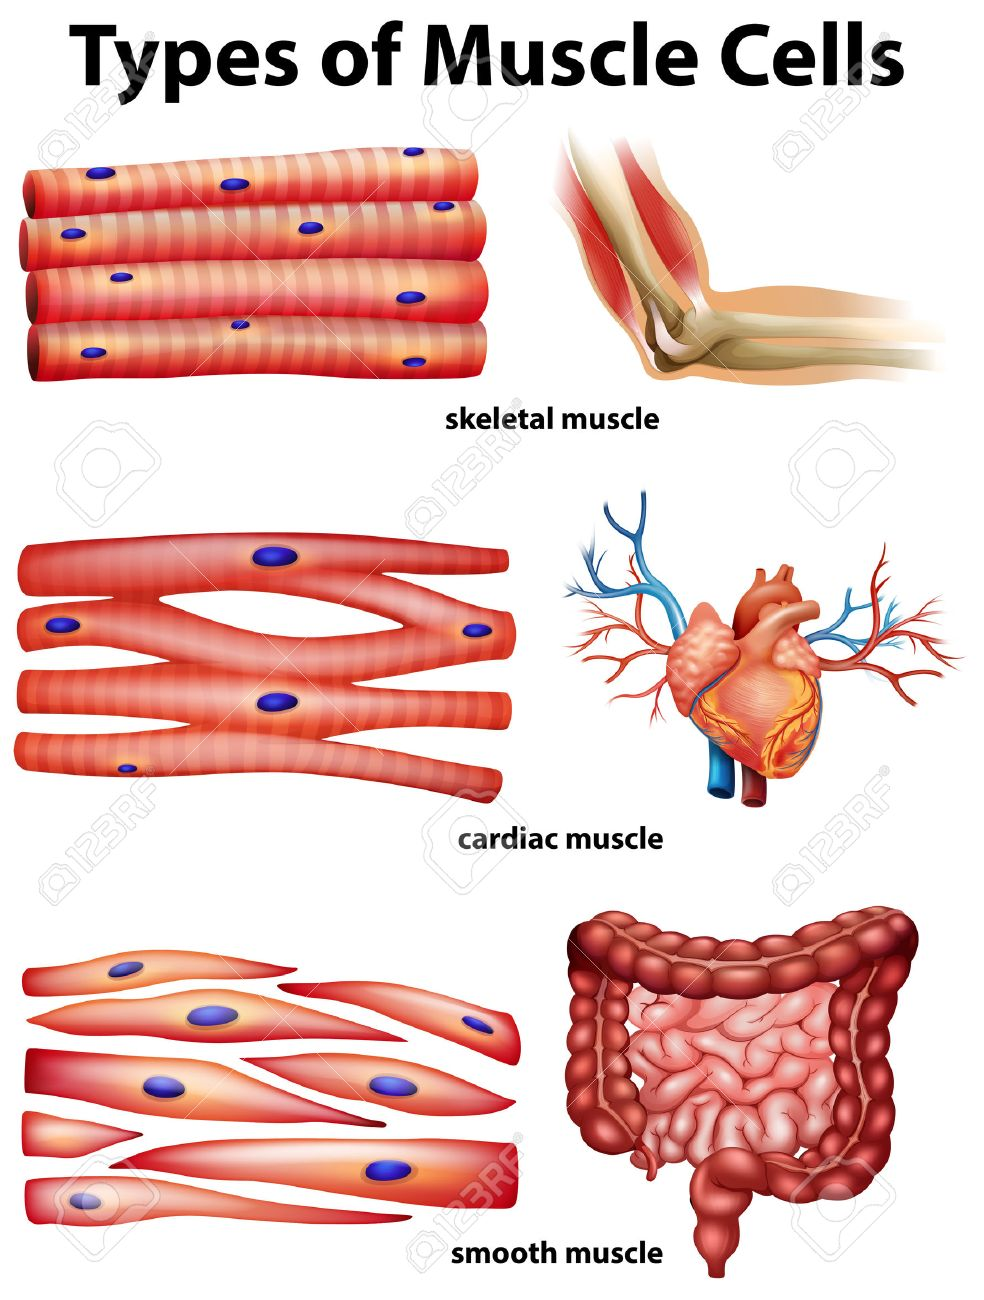 diagram showing types of muscle cells illustration royalty free, Muscles